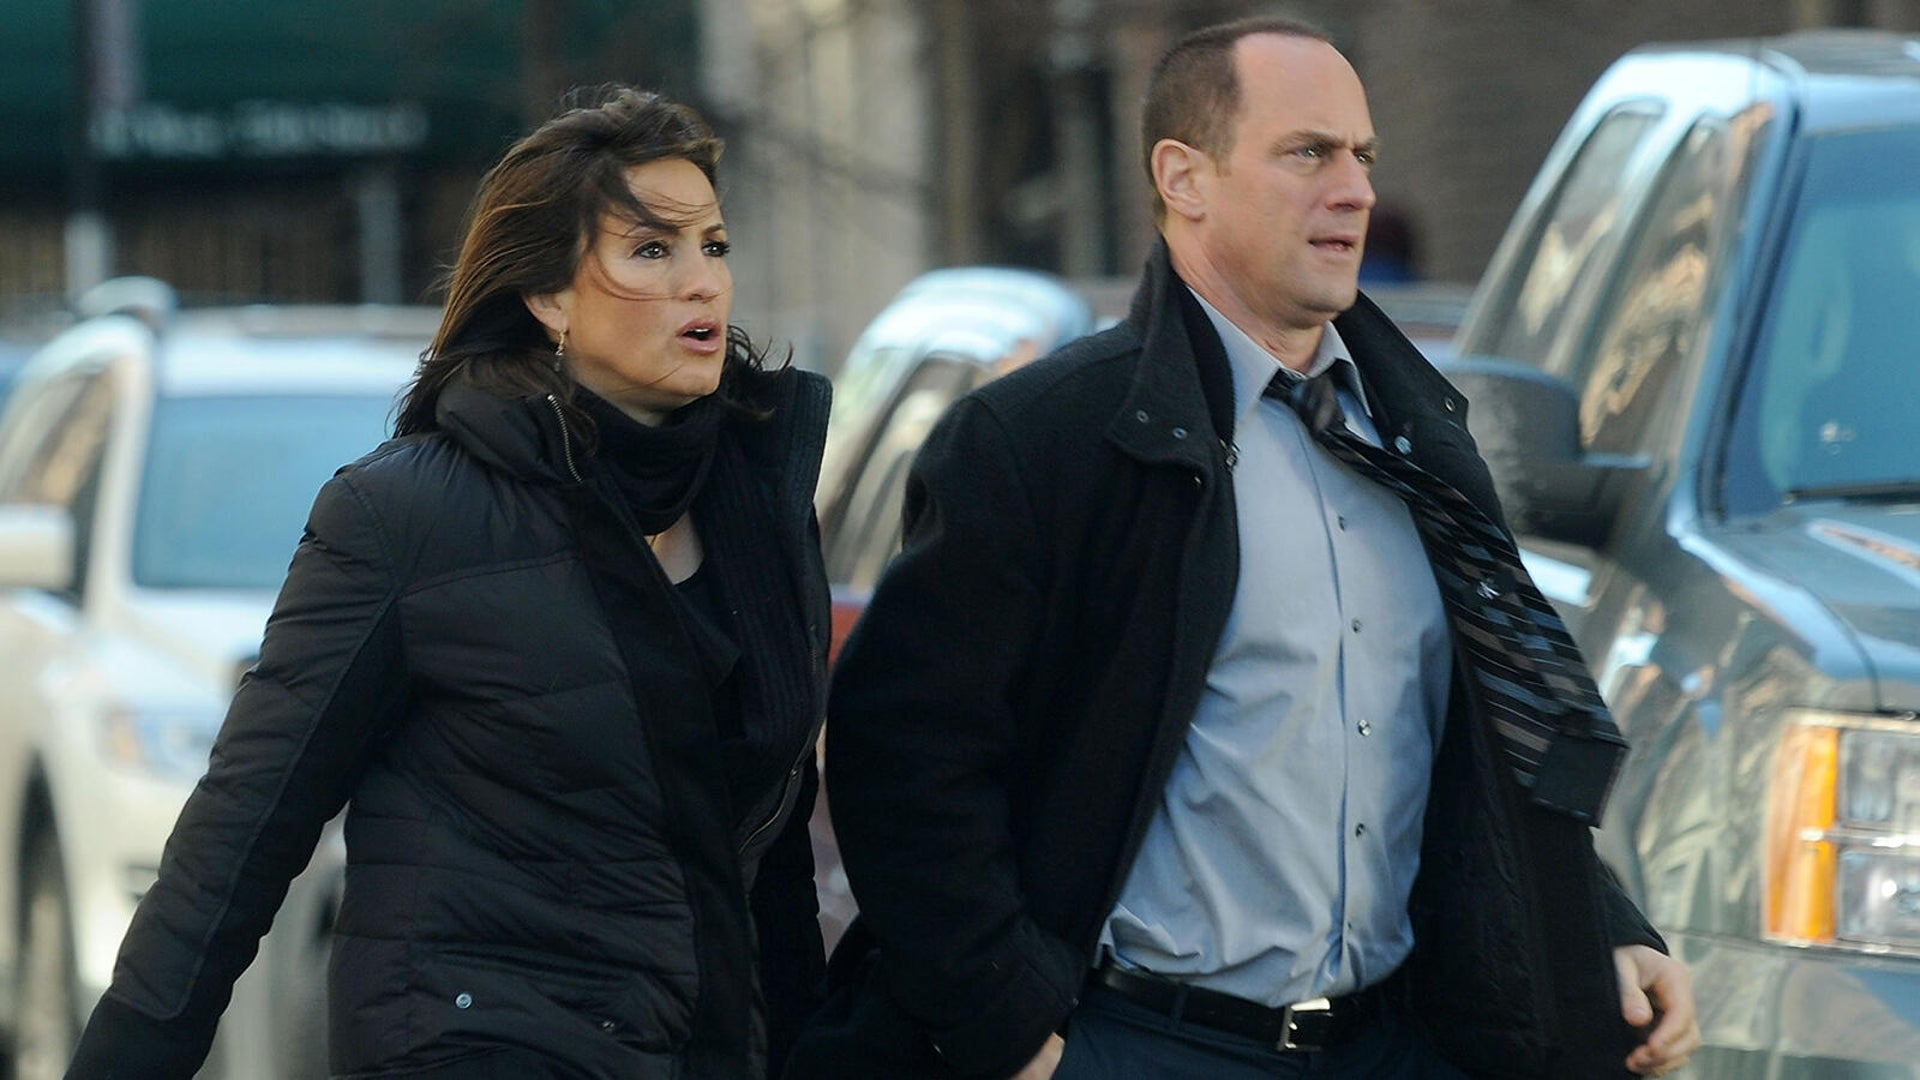 Mariska Hargitay and Christopher Meloni on location for Law & Order: SVU